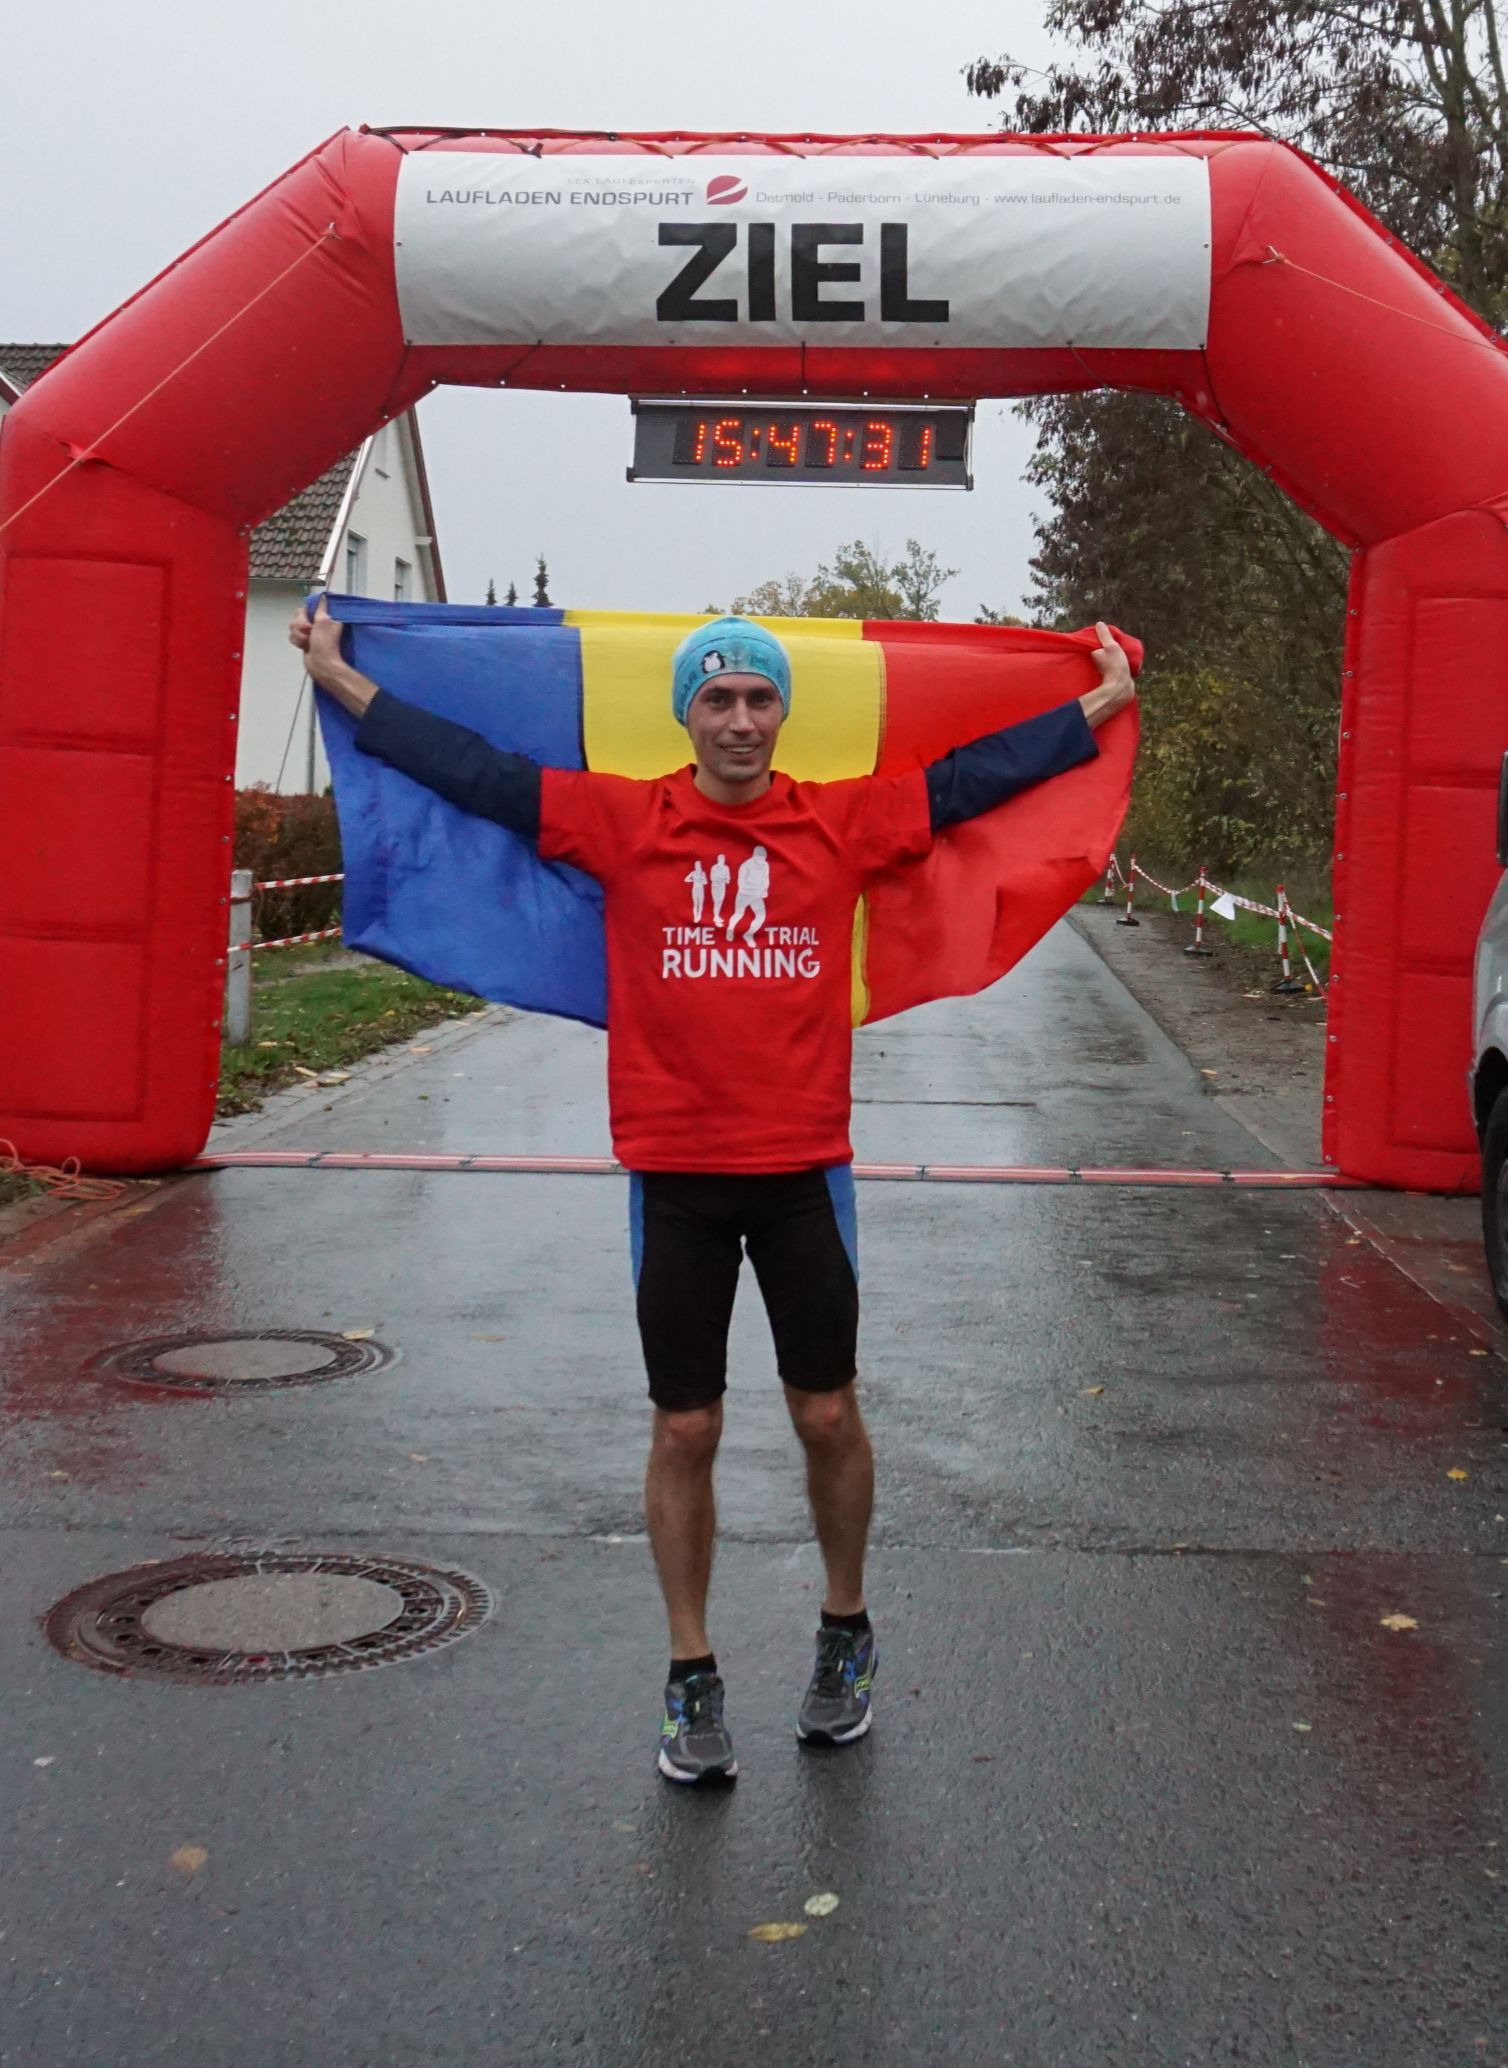 Detmolder Herbstlauf 2018 – Bad weather, fast race, new friend